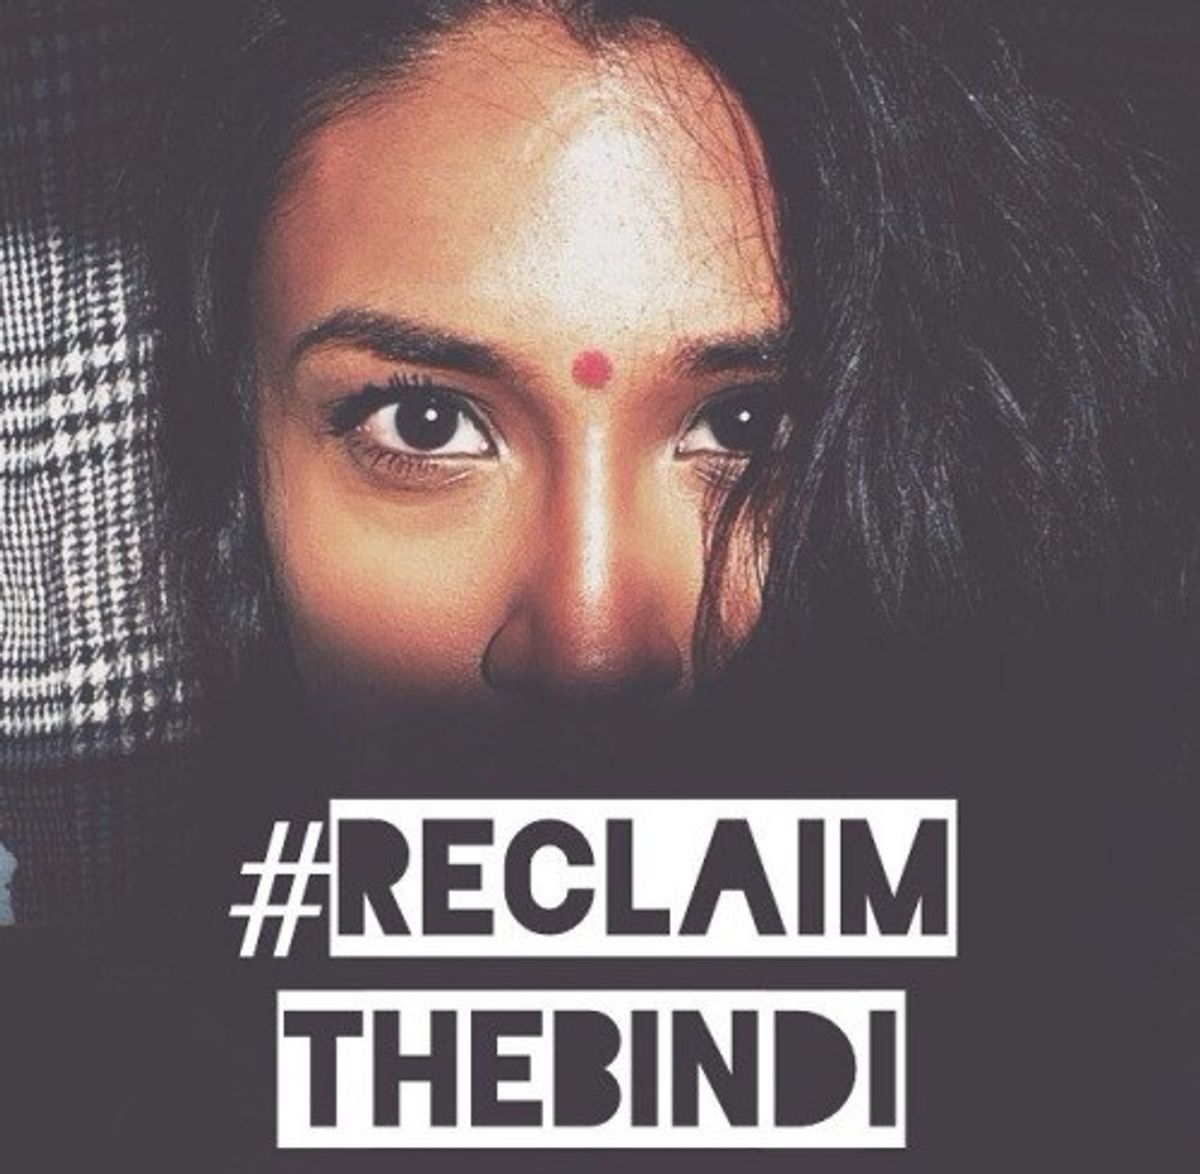 Reclaiming The Bindi: The Modern Movement